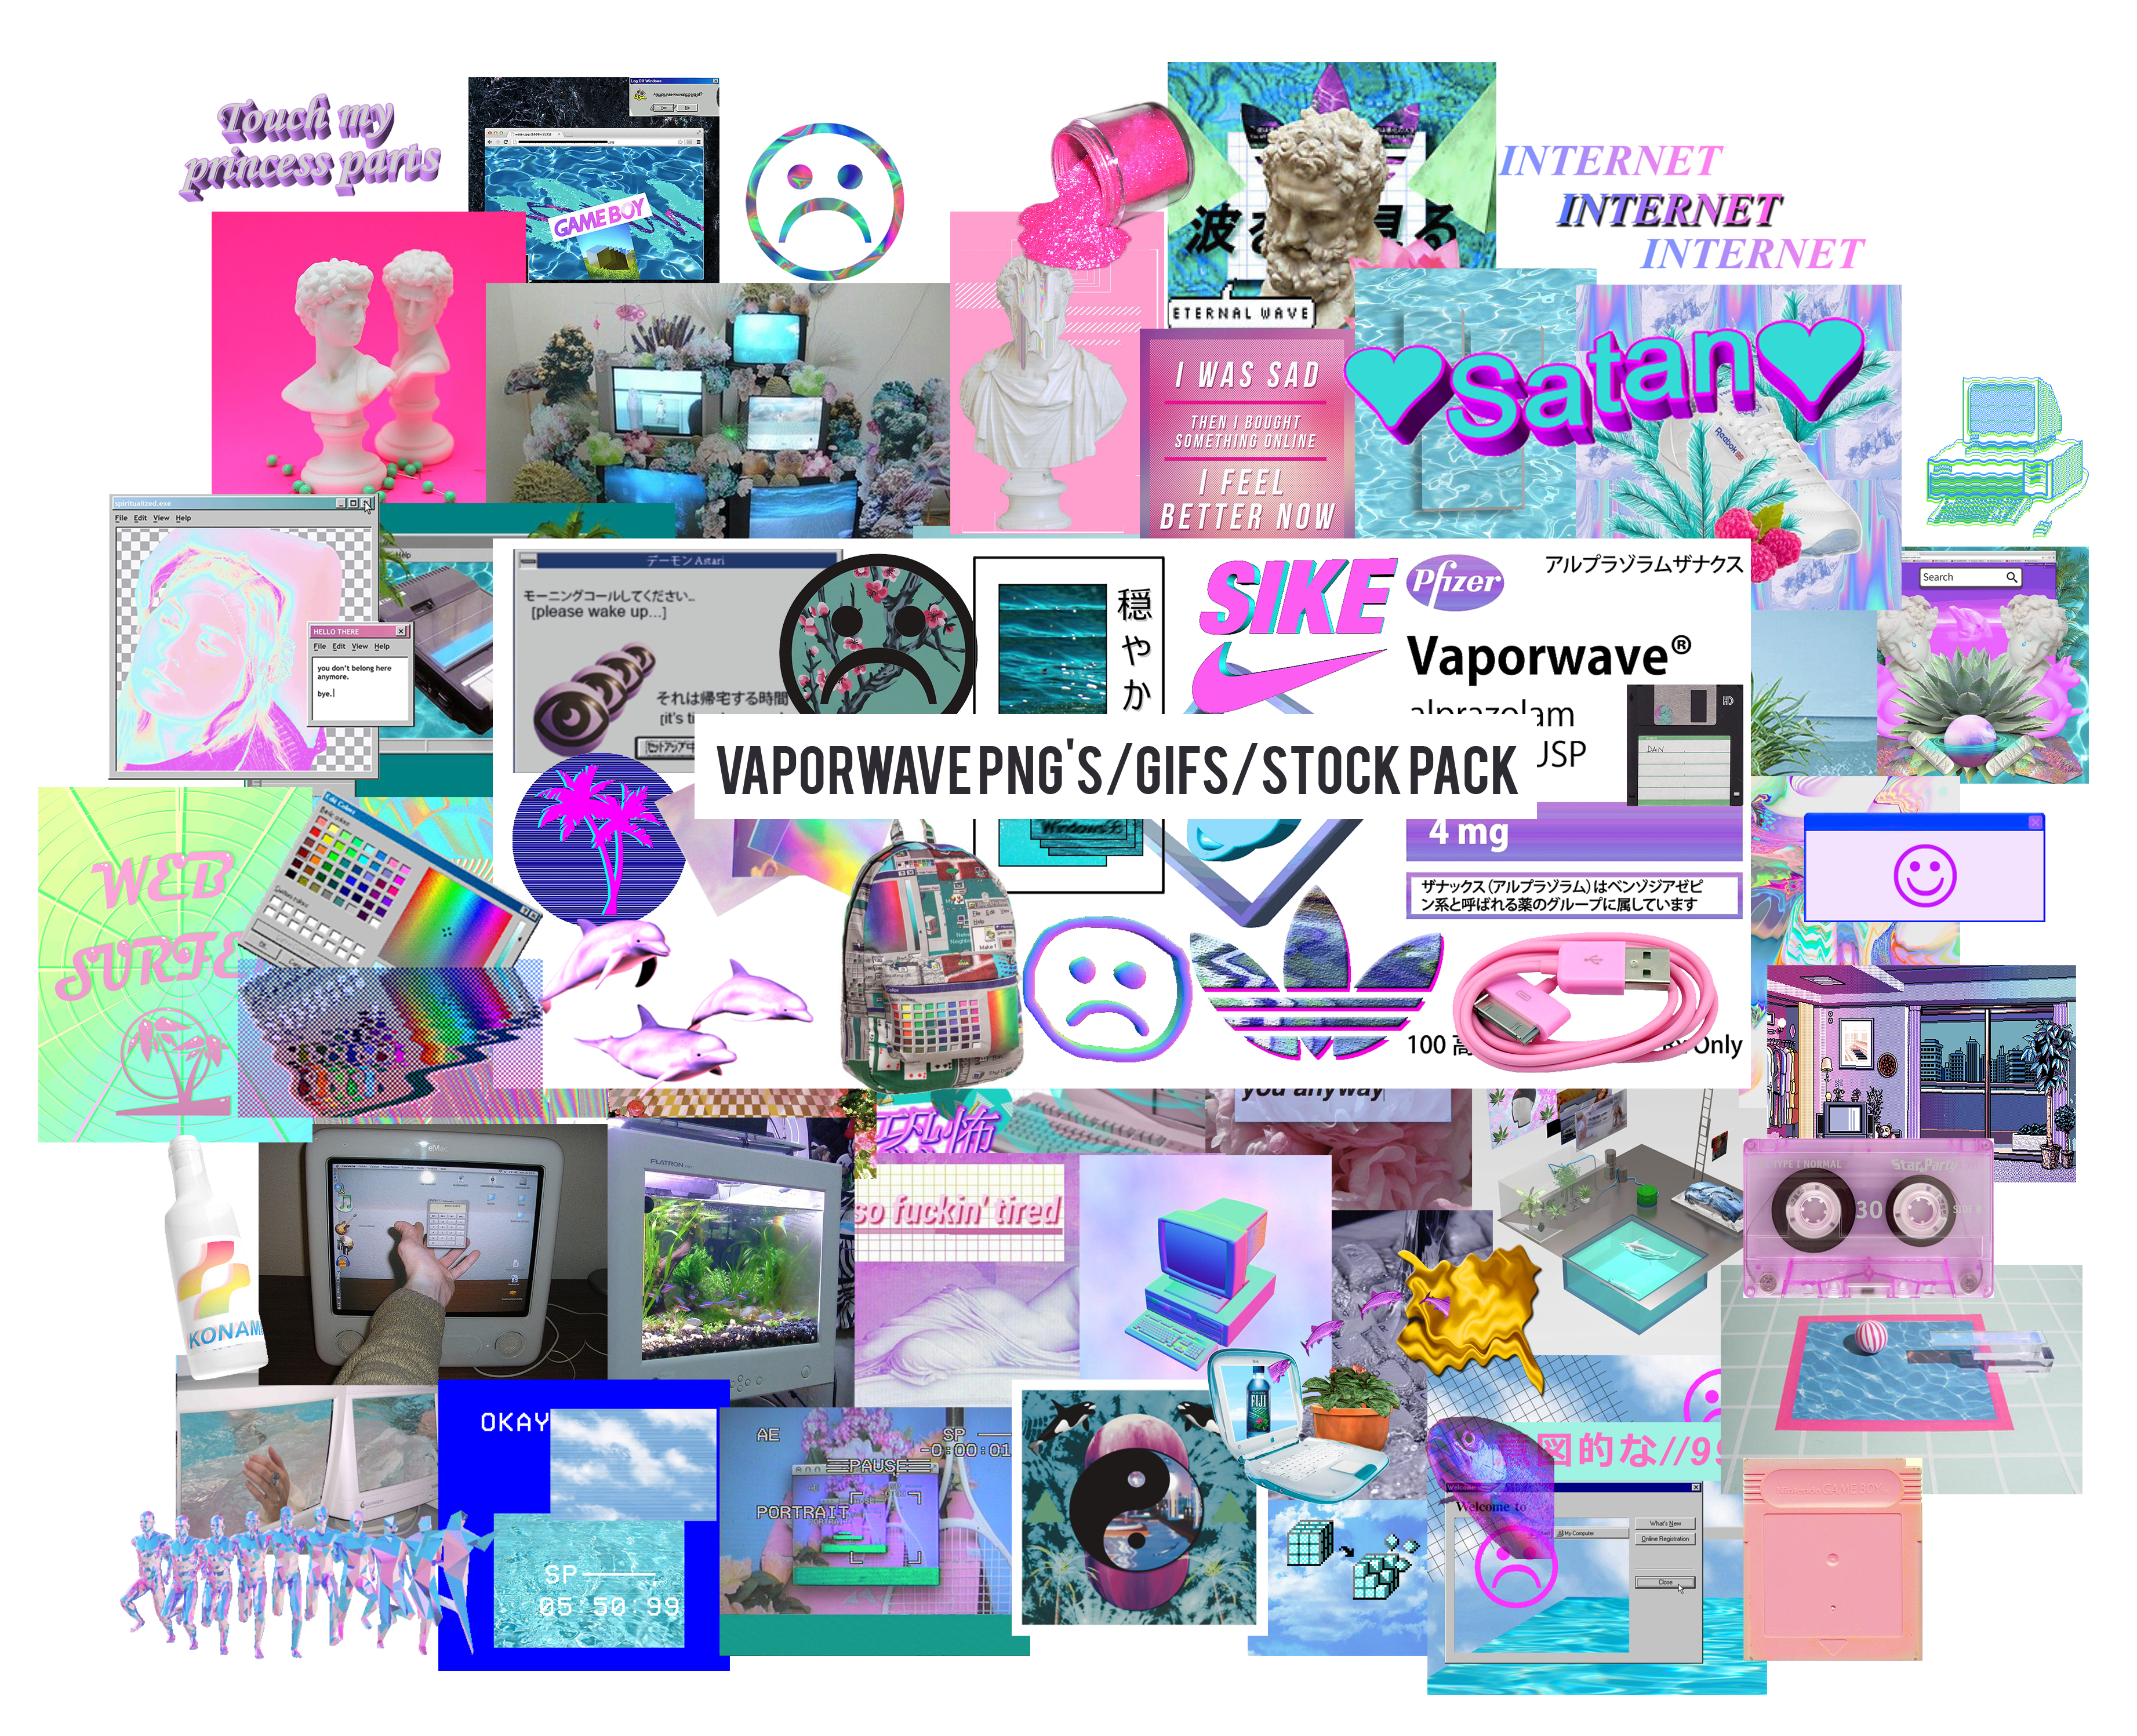 Png s gifs stock. Youtube clipart vaporwave